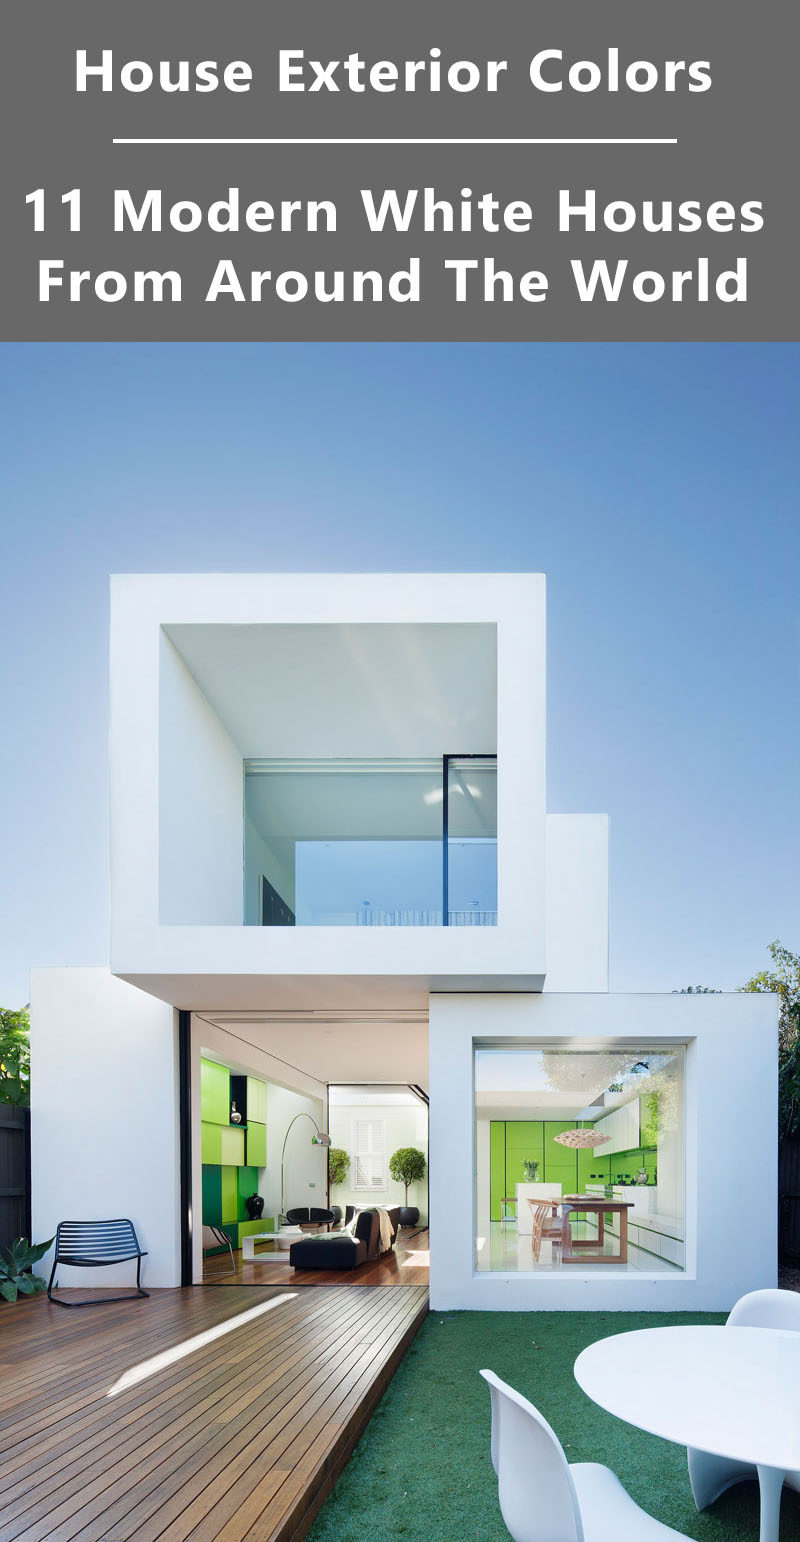 House Exterior Colors - 11 Modern White Houses From Around The World